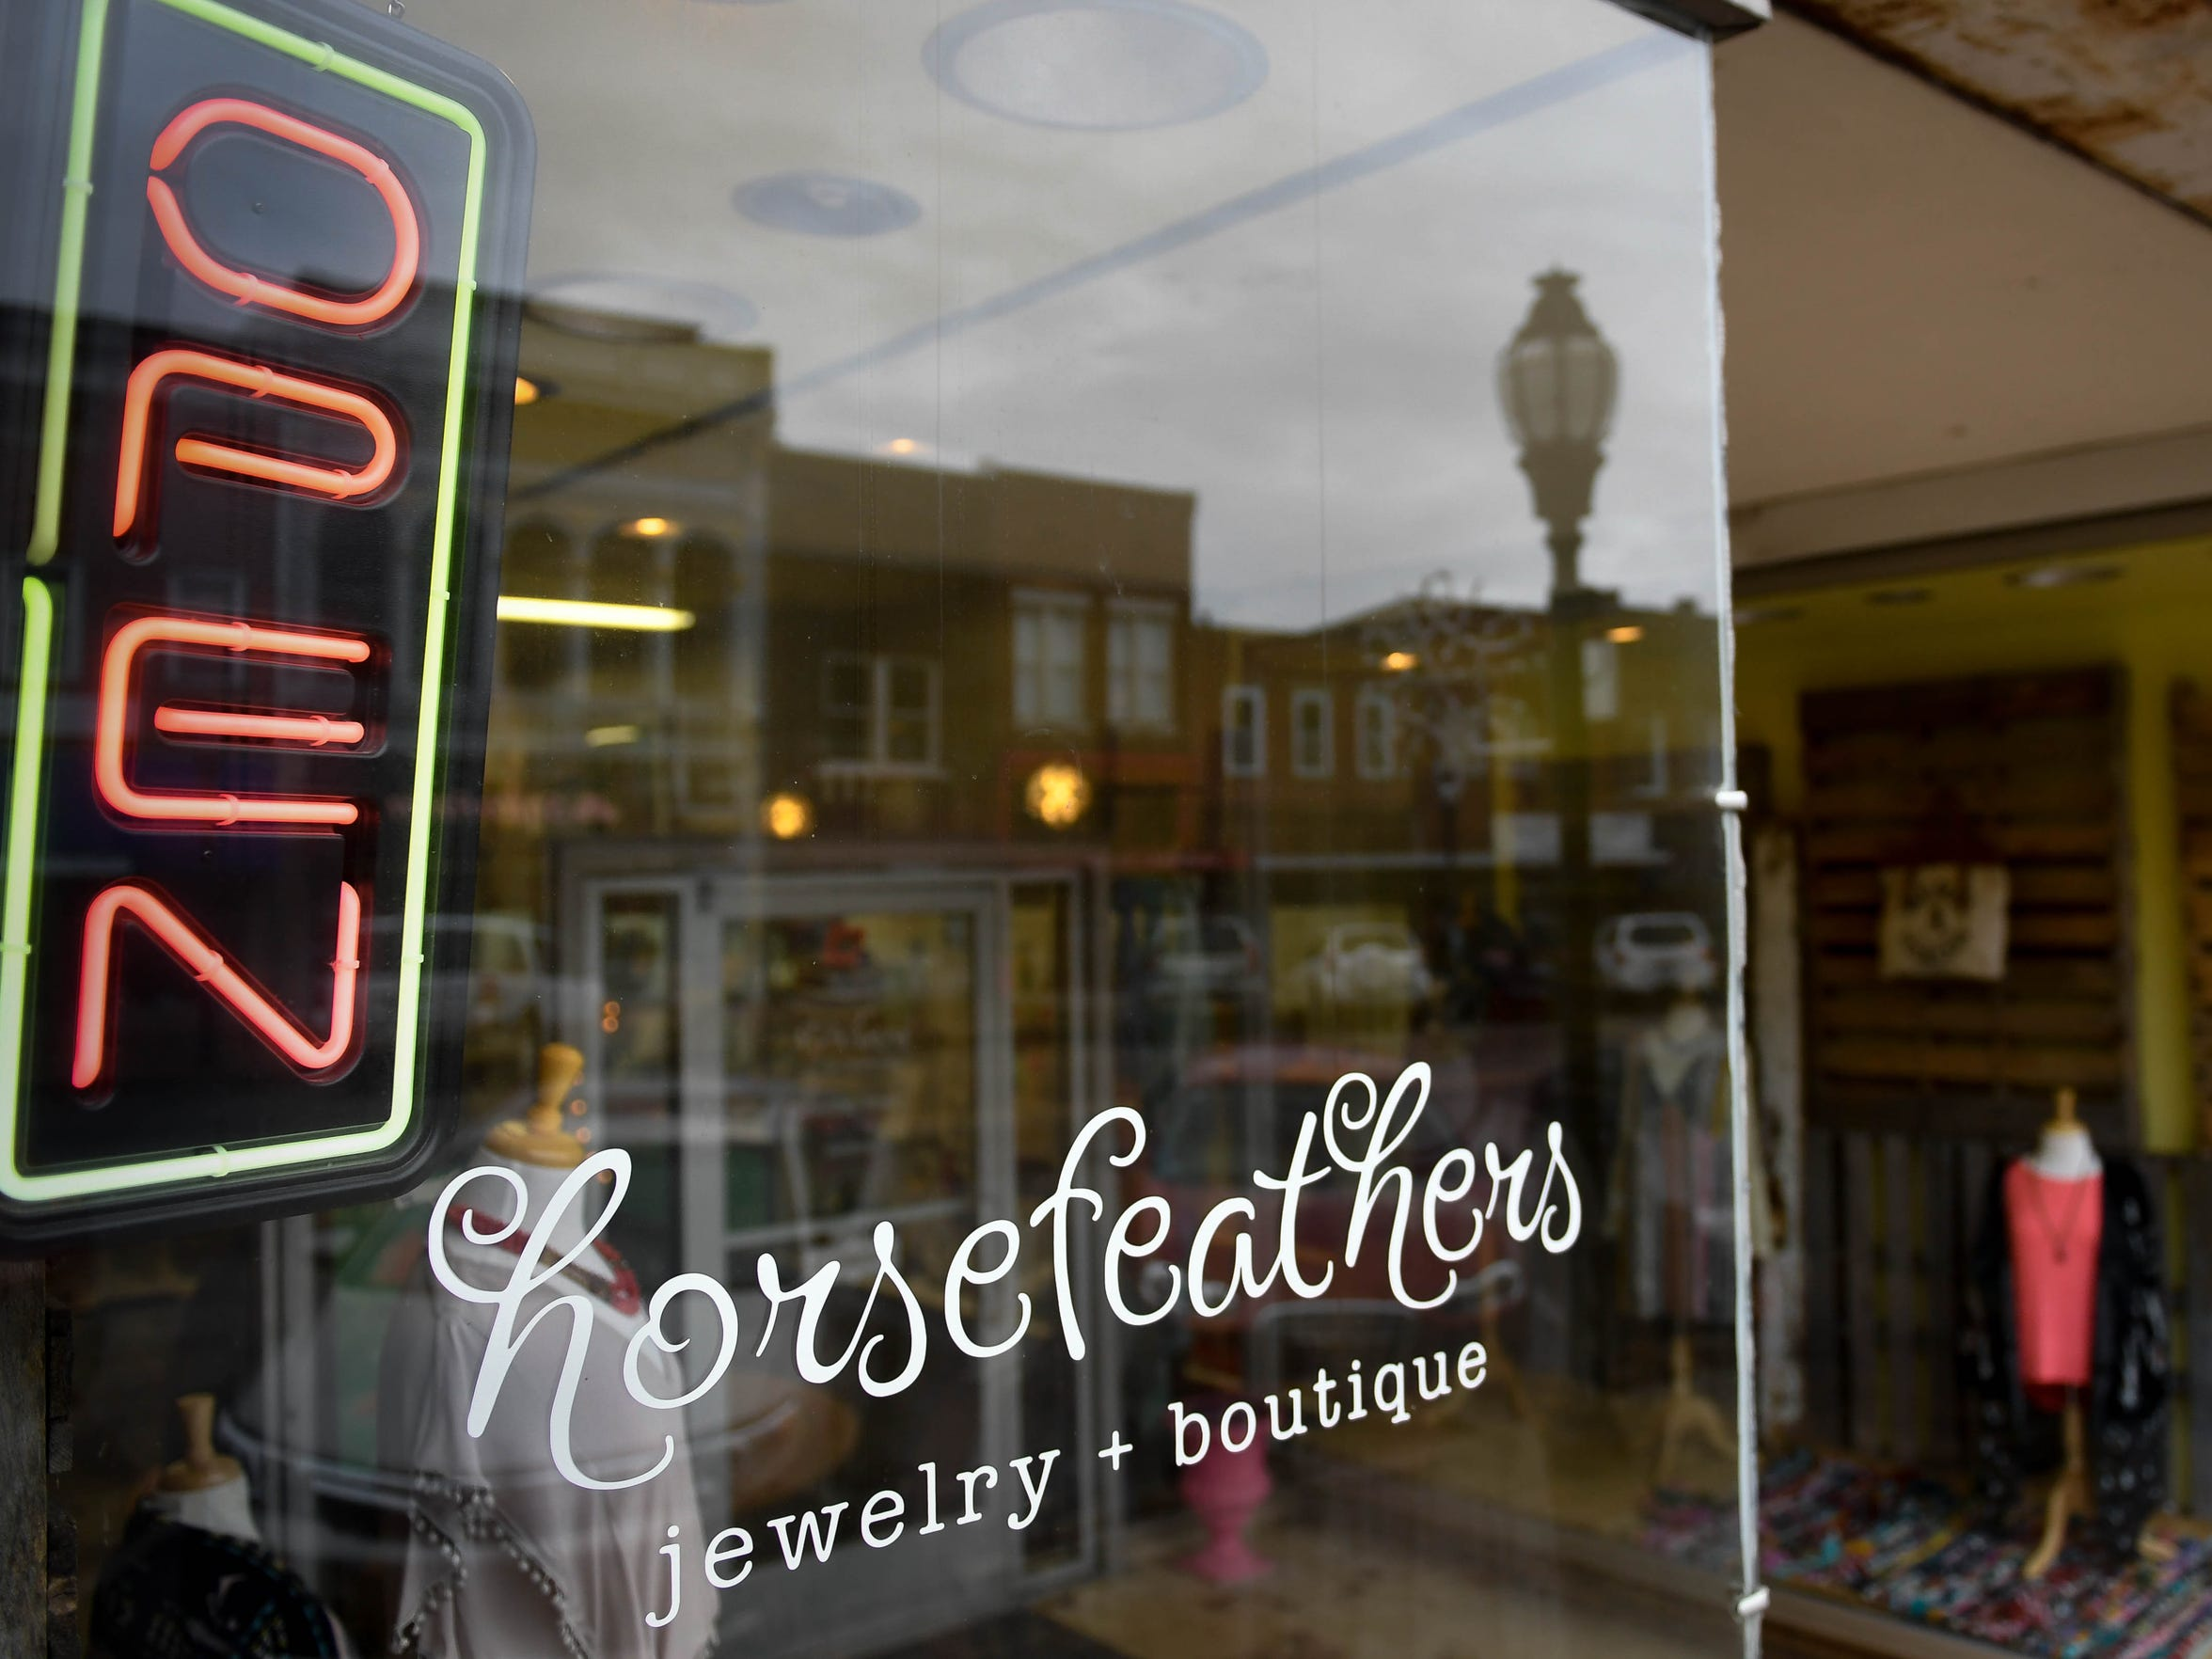 HorseFeathers Jewelry & Boutique store and studio on North Main Street in Henderson Thursday, January 19, 2017.